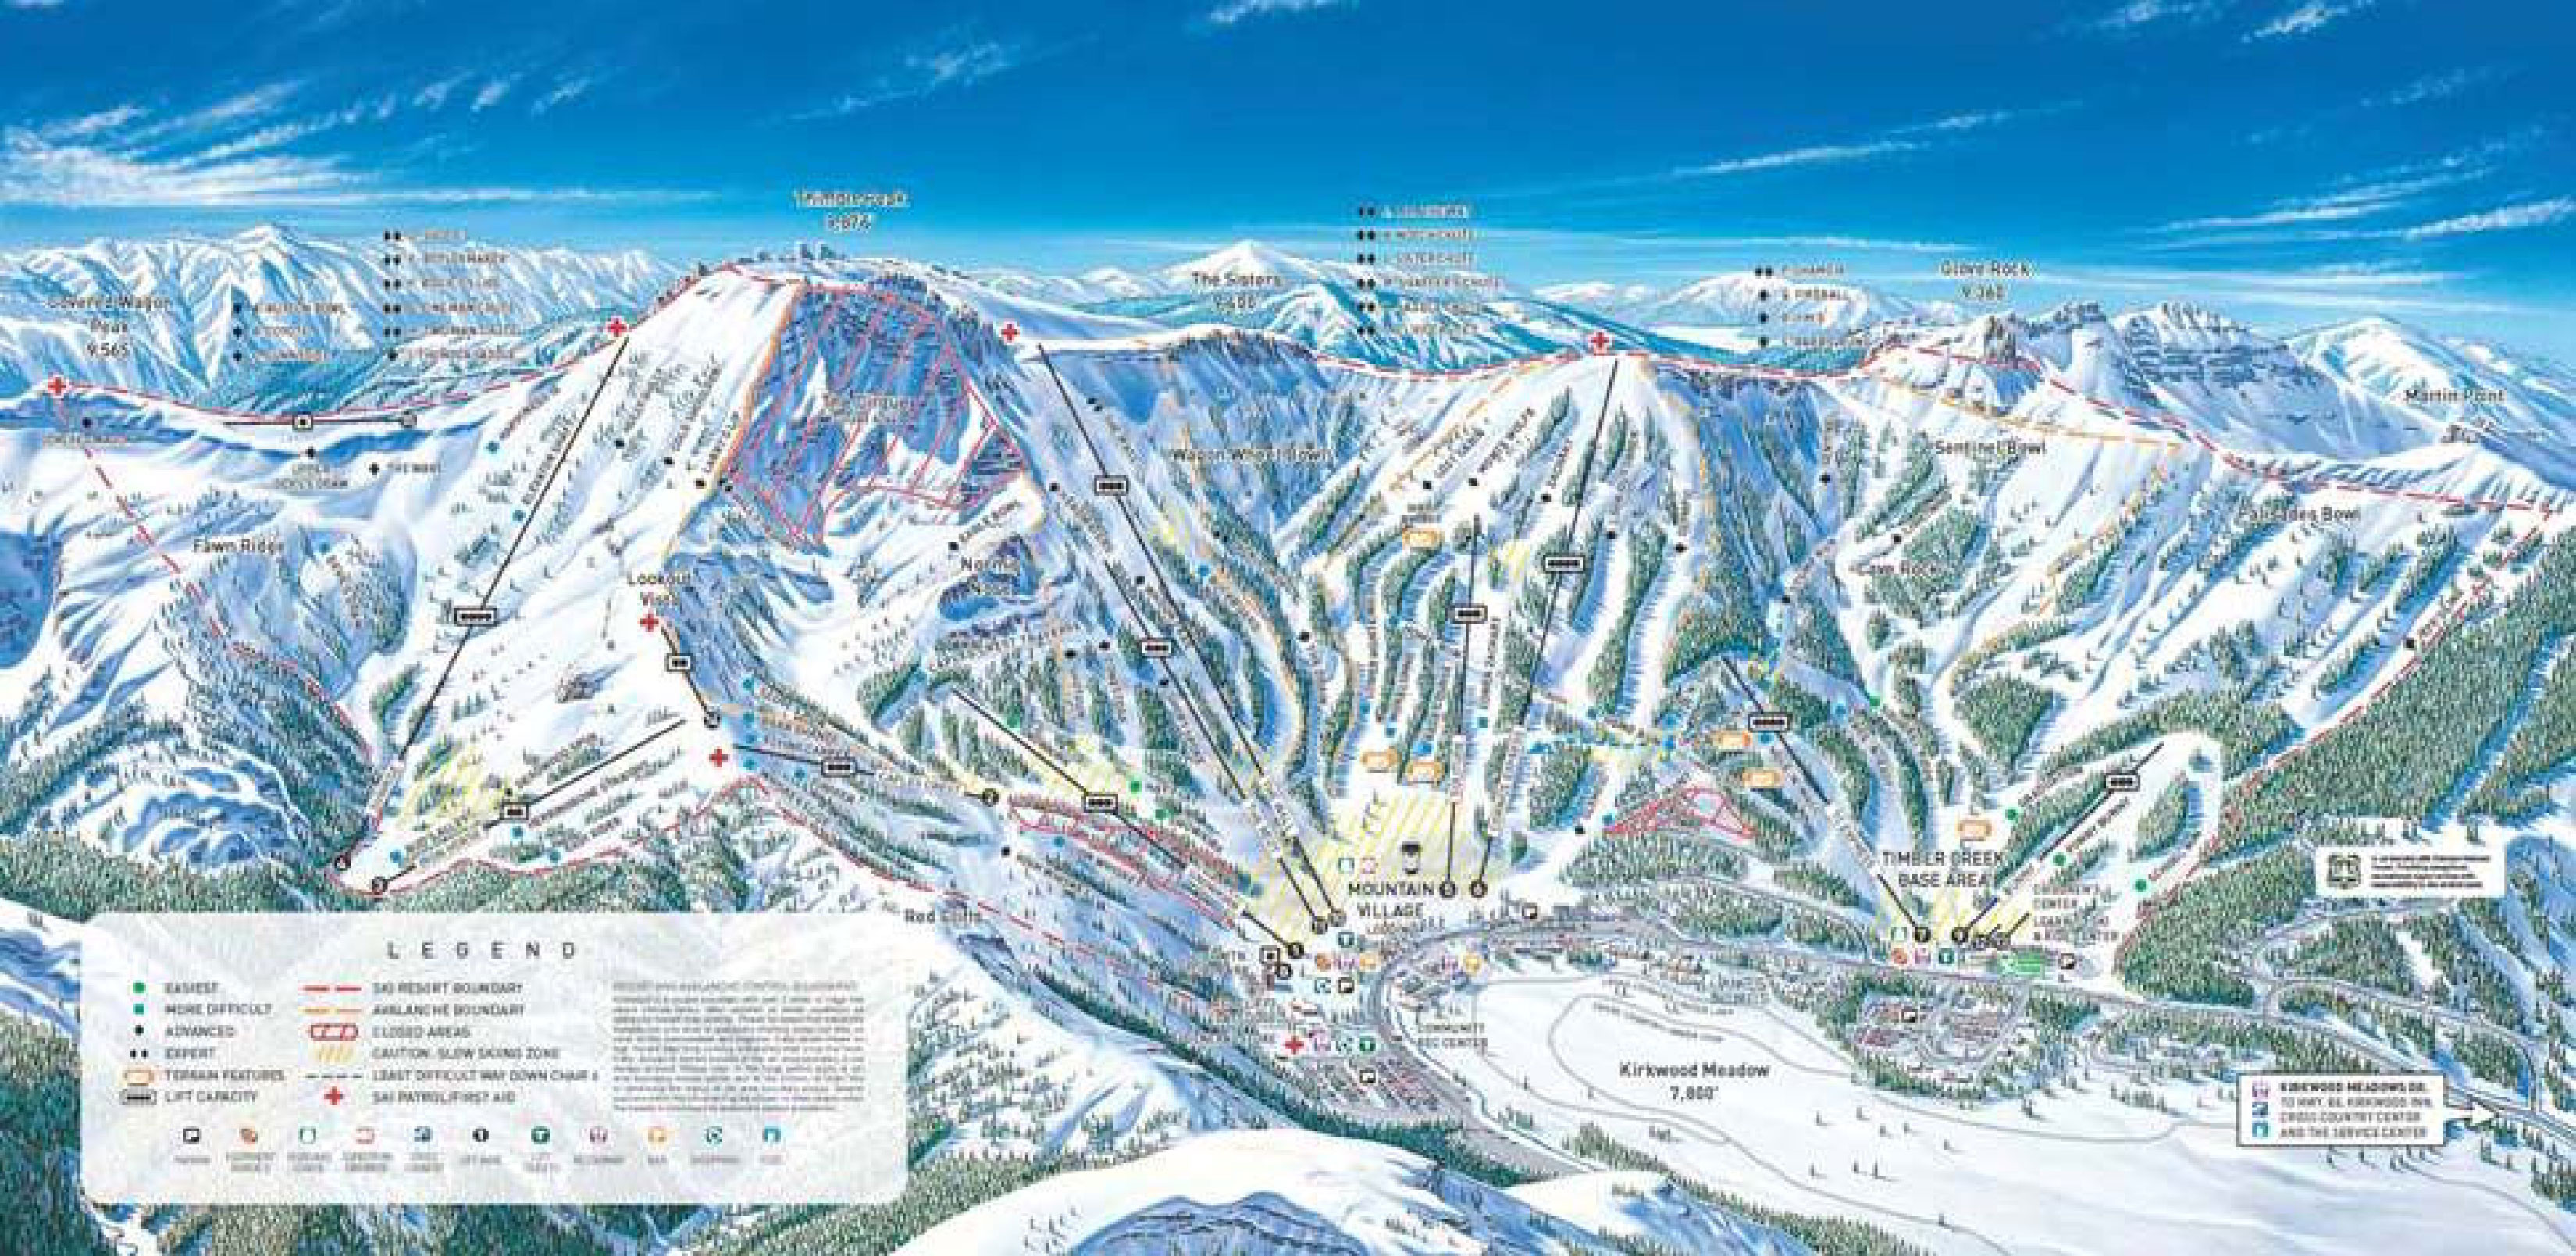 lake tahoe map ski resorts with Kirkwood Ski Resort Trail Map on Gerlitzen as well Area hot springs moreover Tahoe south c ing map as well 23714335508152913 together with Beaver Creek.